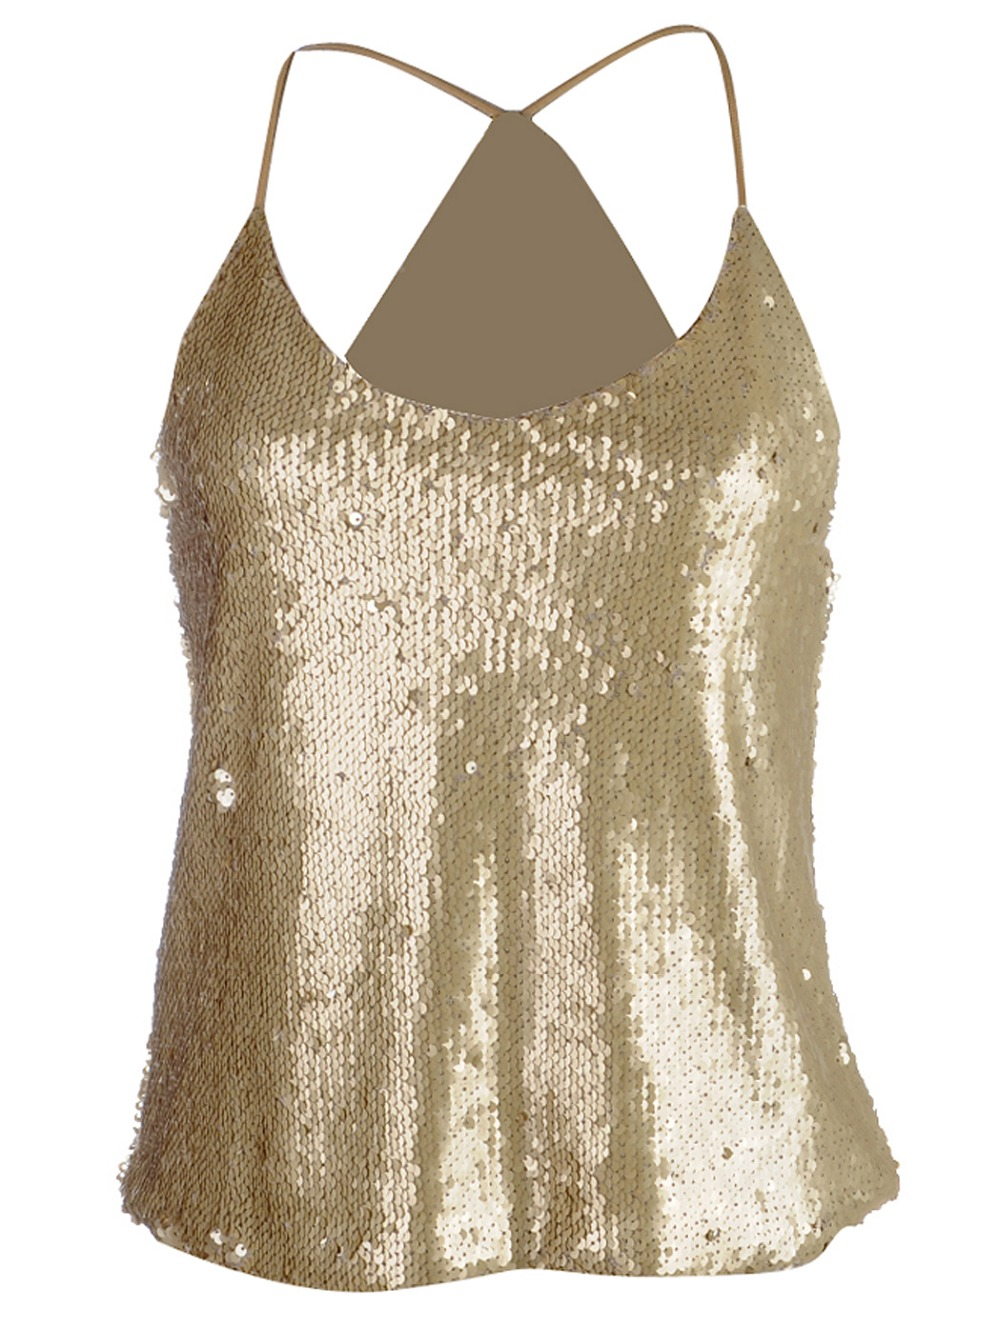 Find great deals on eBay for girls sequin tops. Shop with confidence.